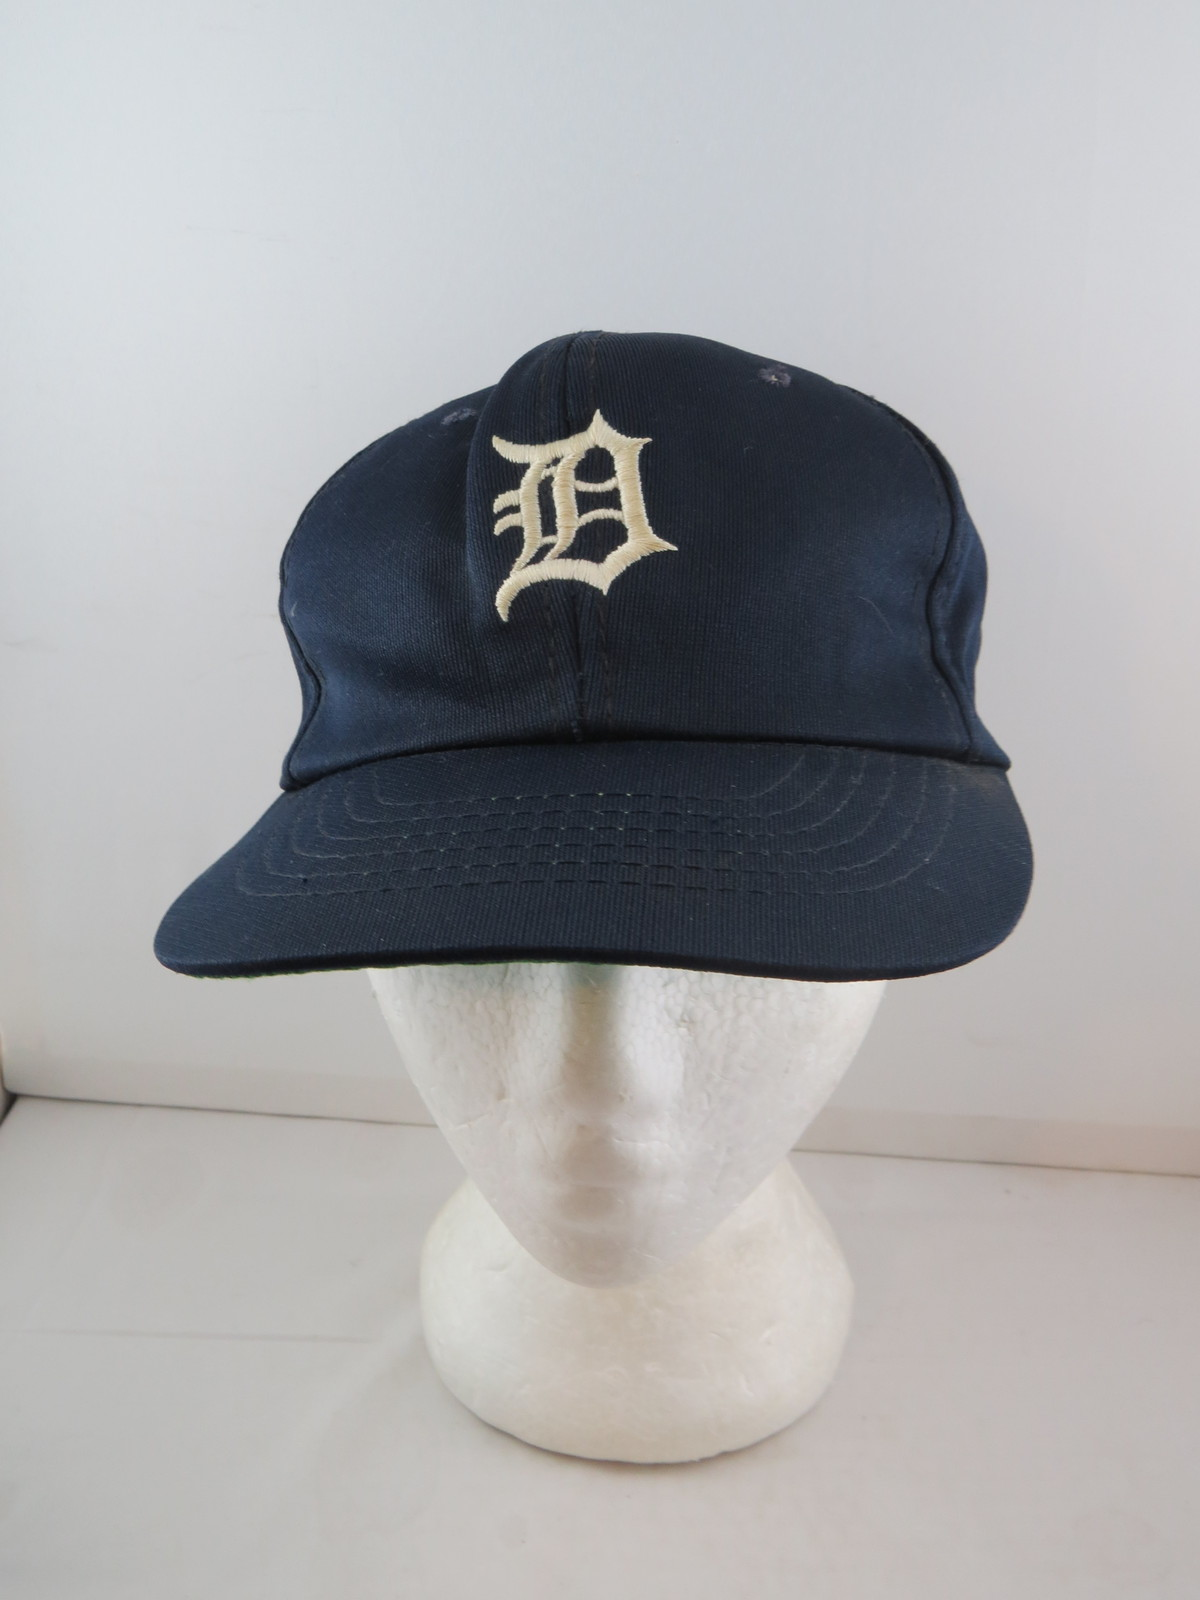 Vintage Detroit Tigers Hat - 1980s Mc Donald's Promo - Adult Snapback